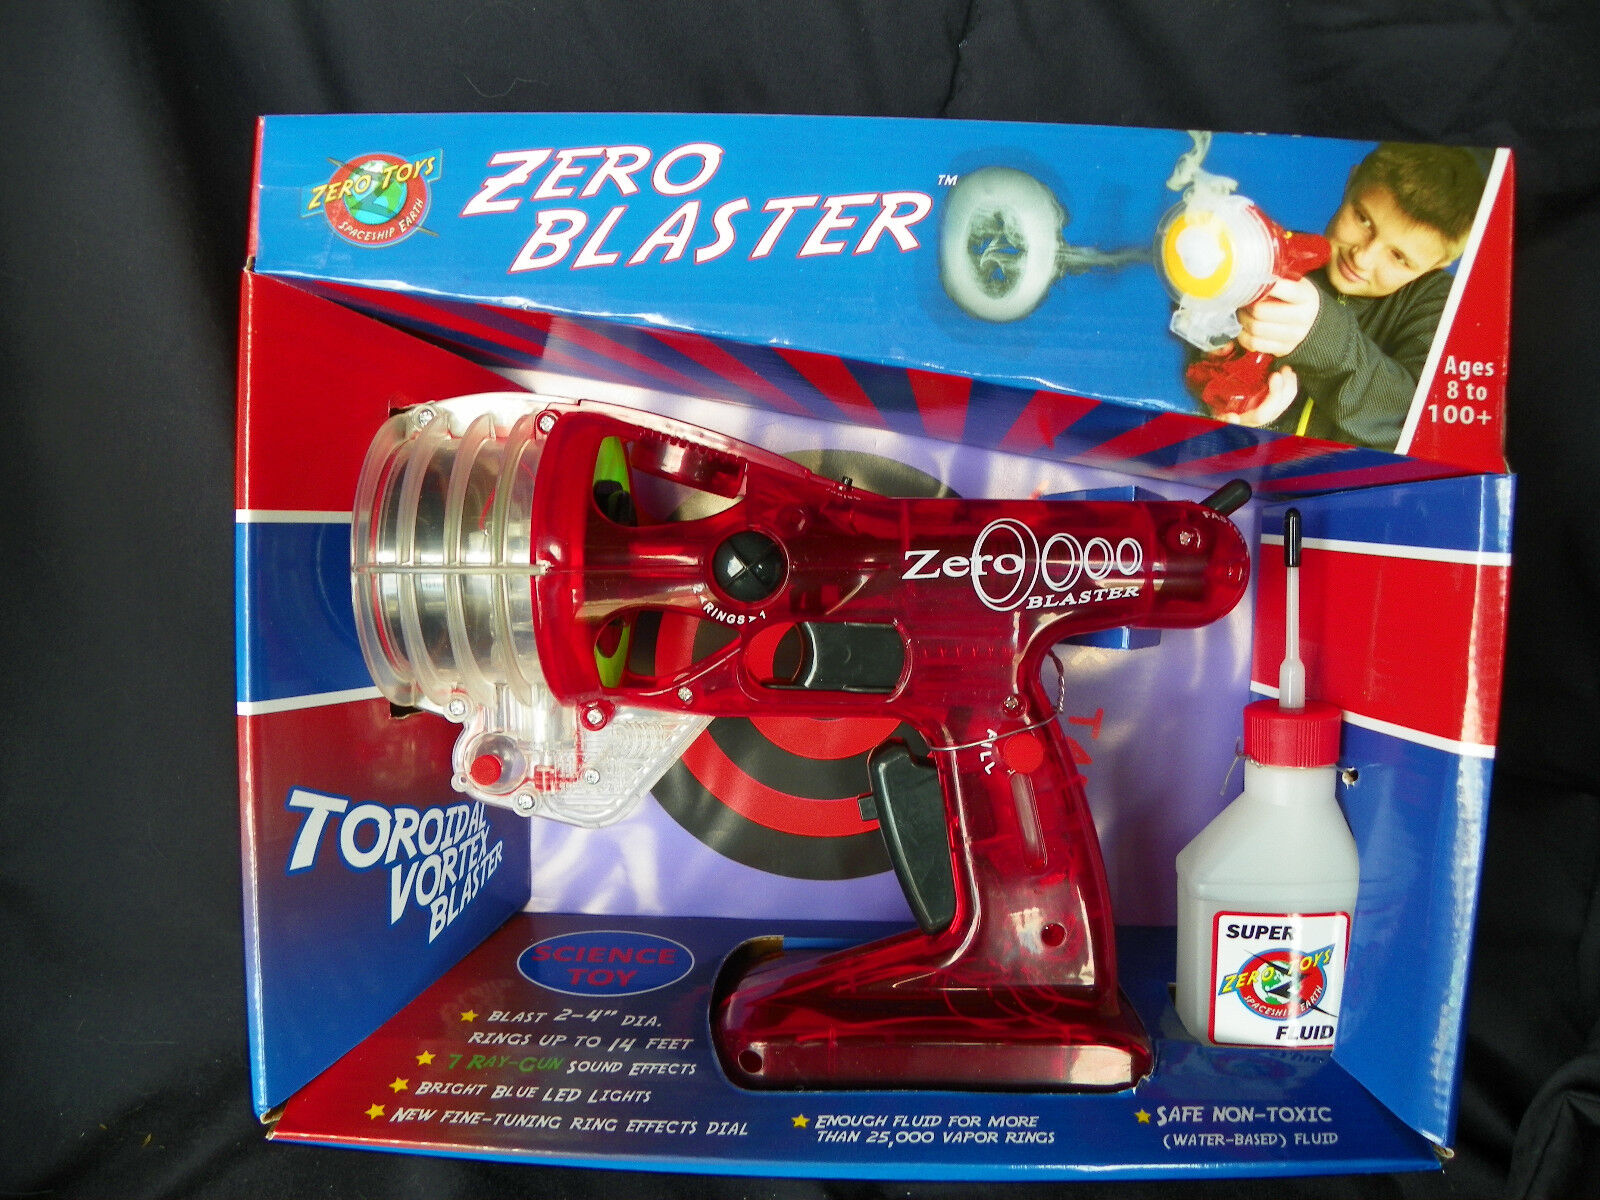 Zero Blaster - Science Toy - Red-Blue & Green 2